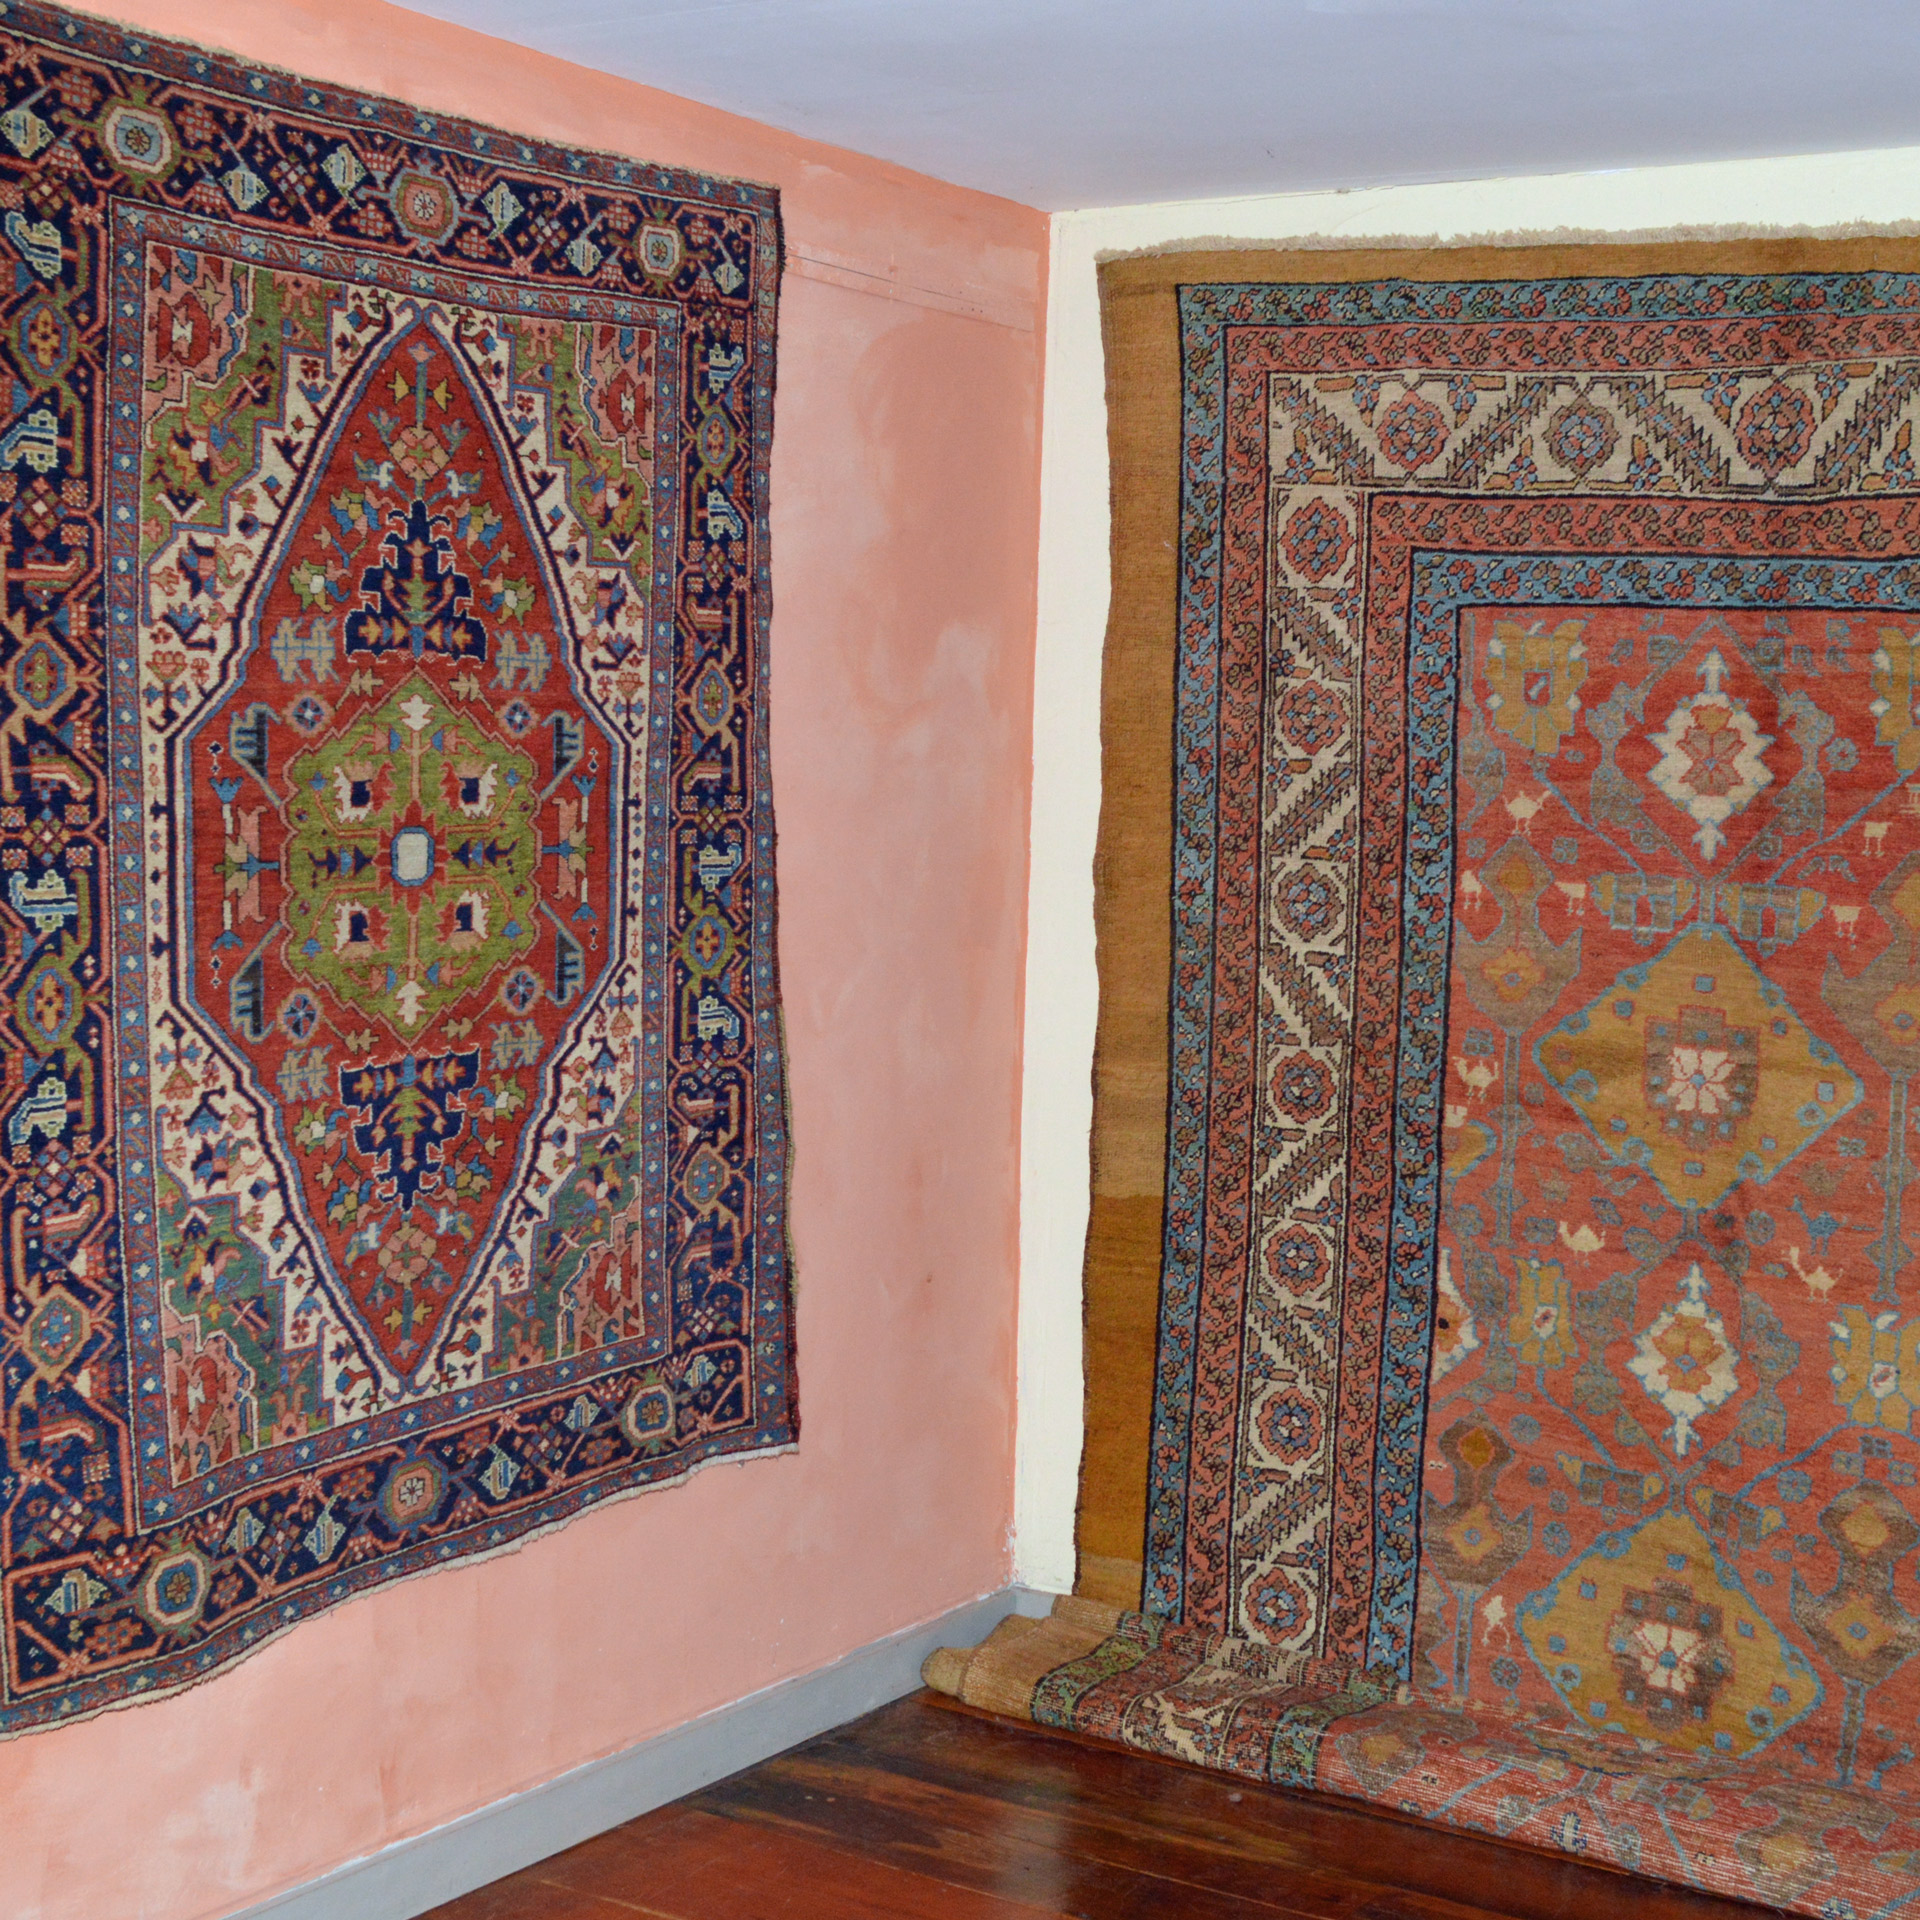 Antique Karaja rug and Bakshaish carpet at Douglas Stock Gallery, Boston, MA area antique Oriental rug and carpet specialist dealer with a national reputation